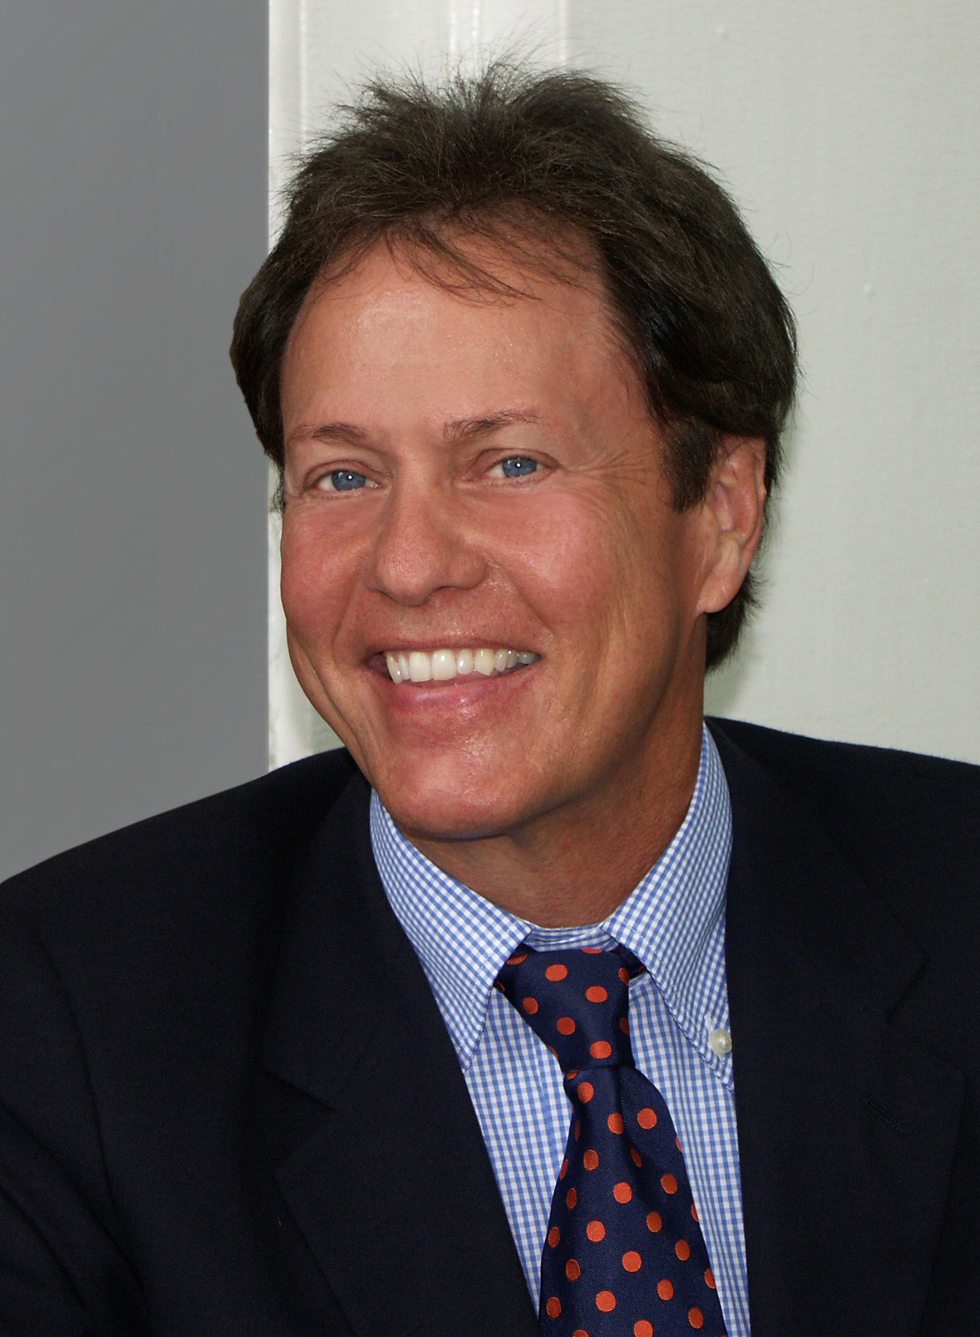 The 68-year old son of father (?) and mother(?) Rick Dees in 2018 photo. Rick Dees earned a  million dollar salary - leaving the net worth at 2 million in 2018